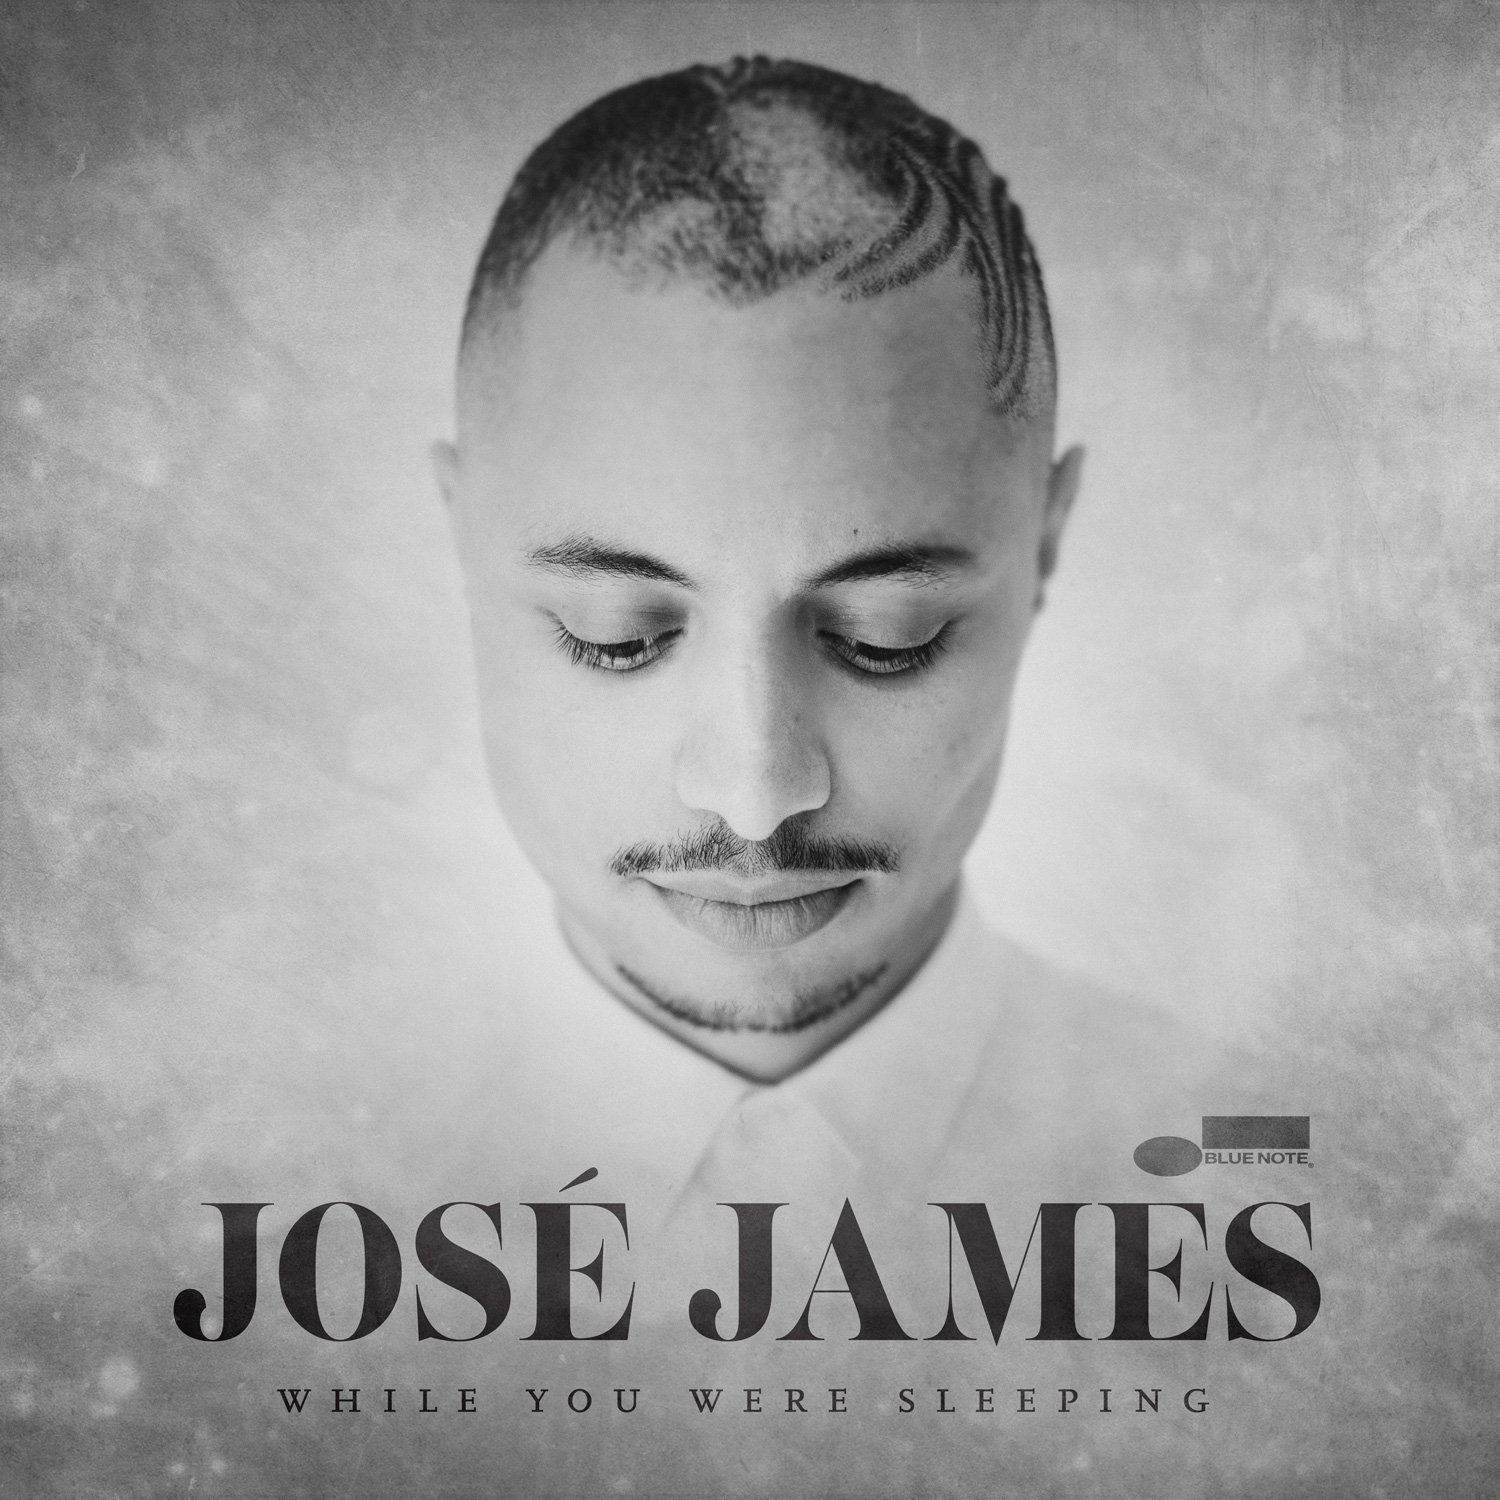 José James' Restlessness is a Virtue on 'While You Were Sleeping'